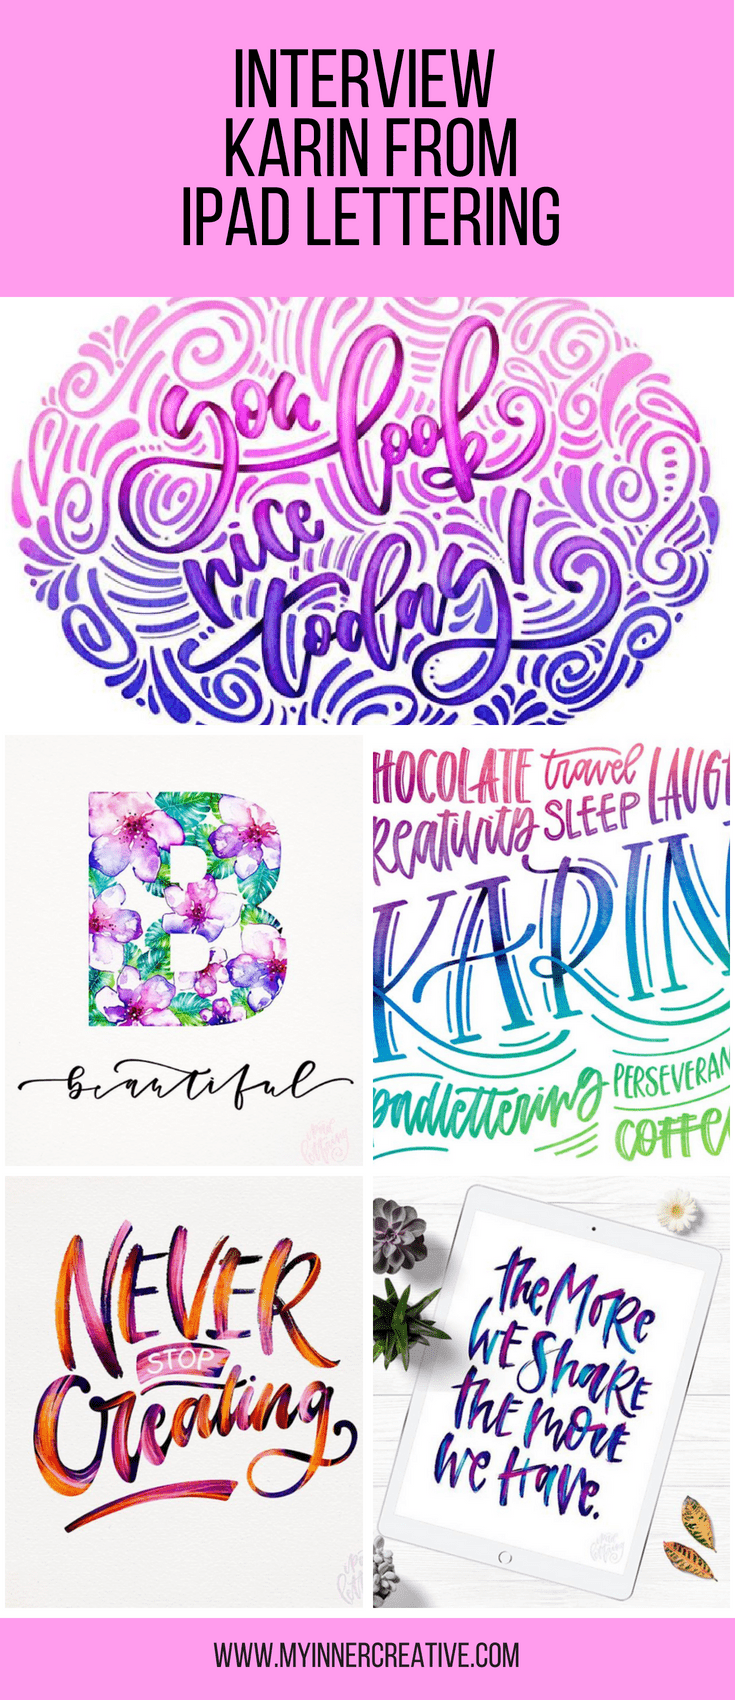 interview with Karin Ipad Lettering